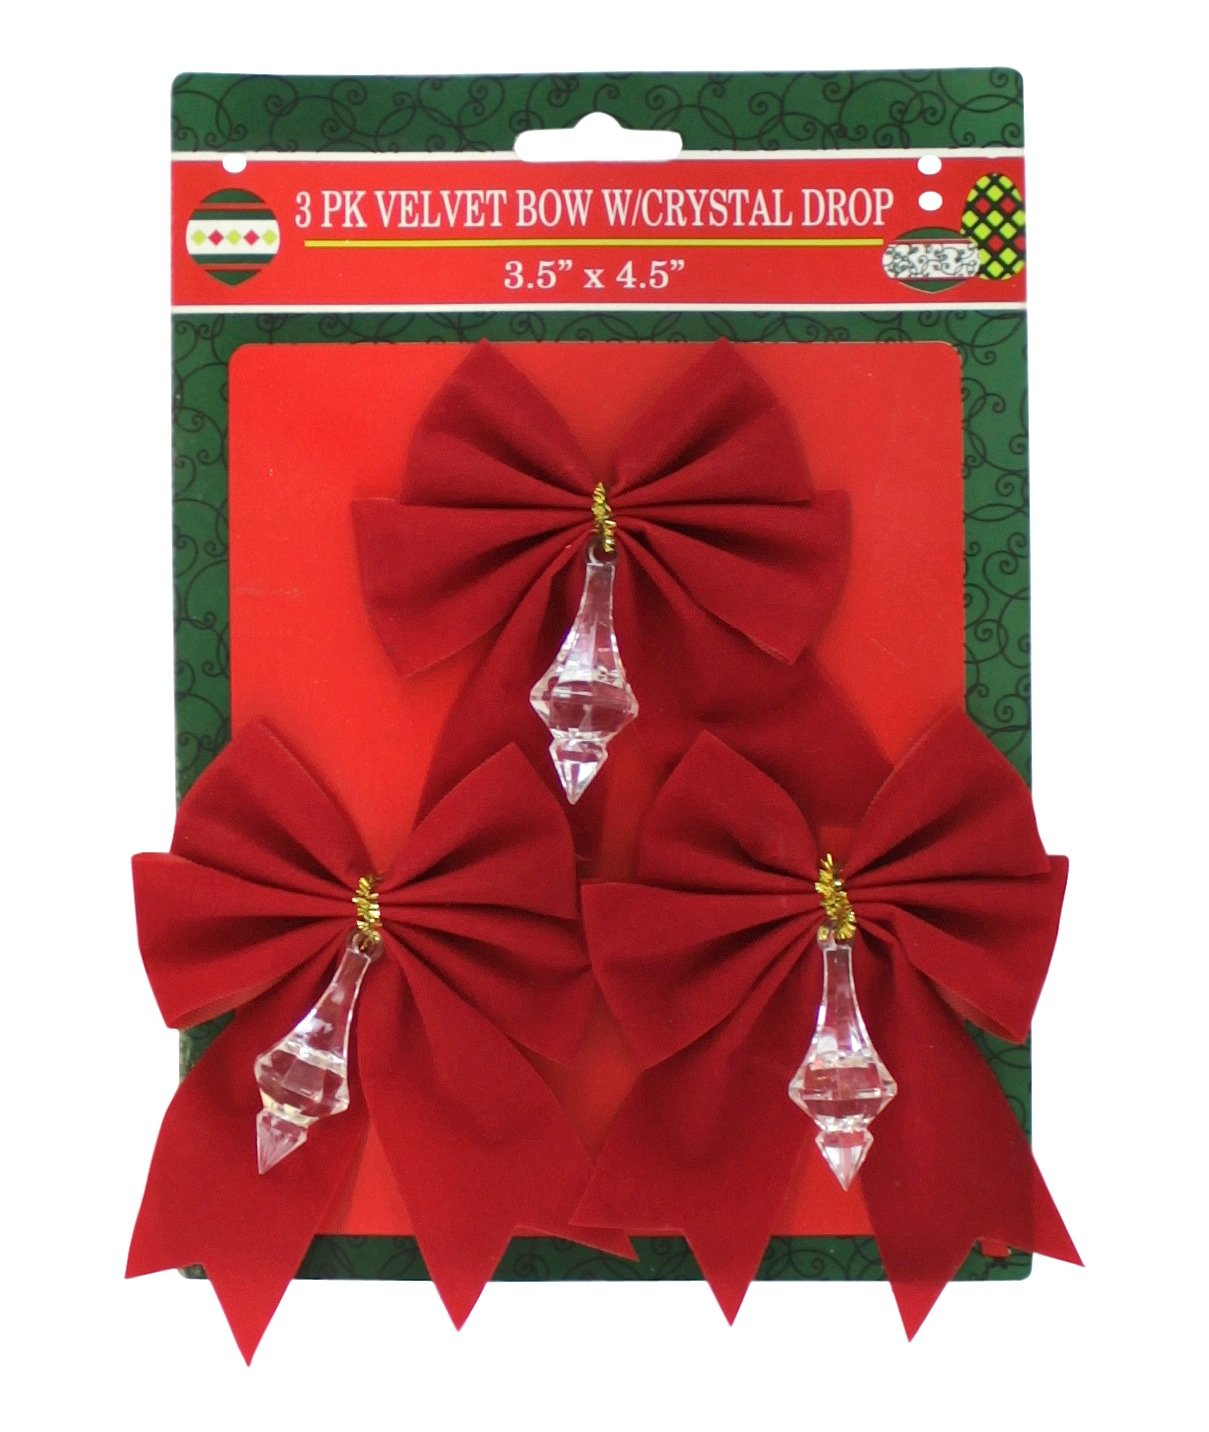 G91529N6PK Red Velvet Bow With Crystal Drop 6-Pack Pennsylvania Christmas Co